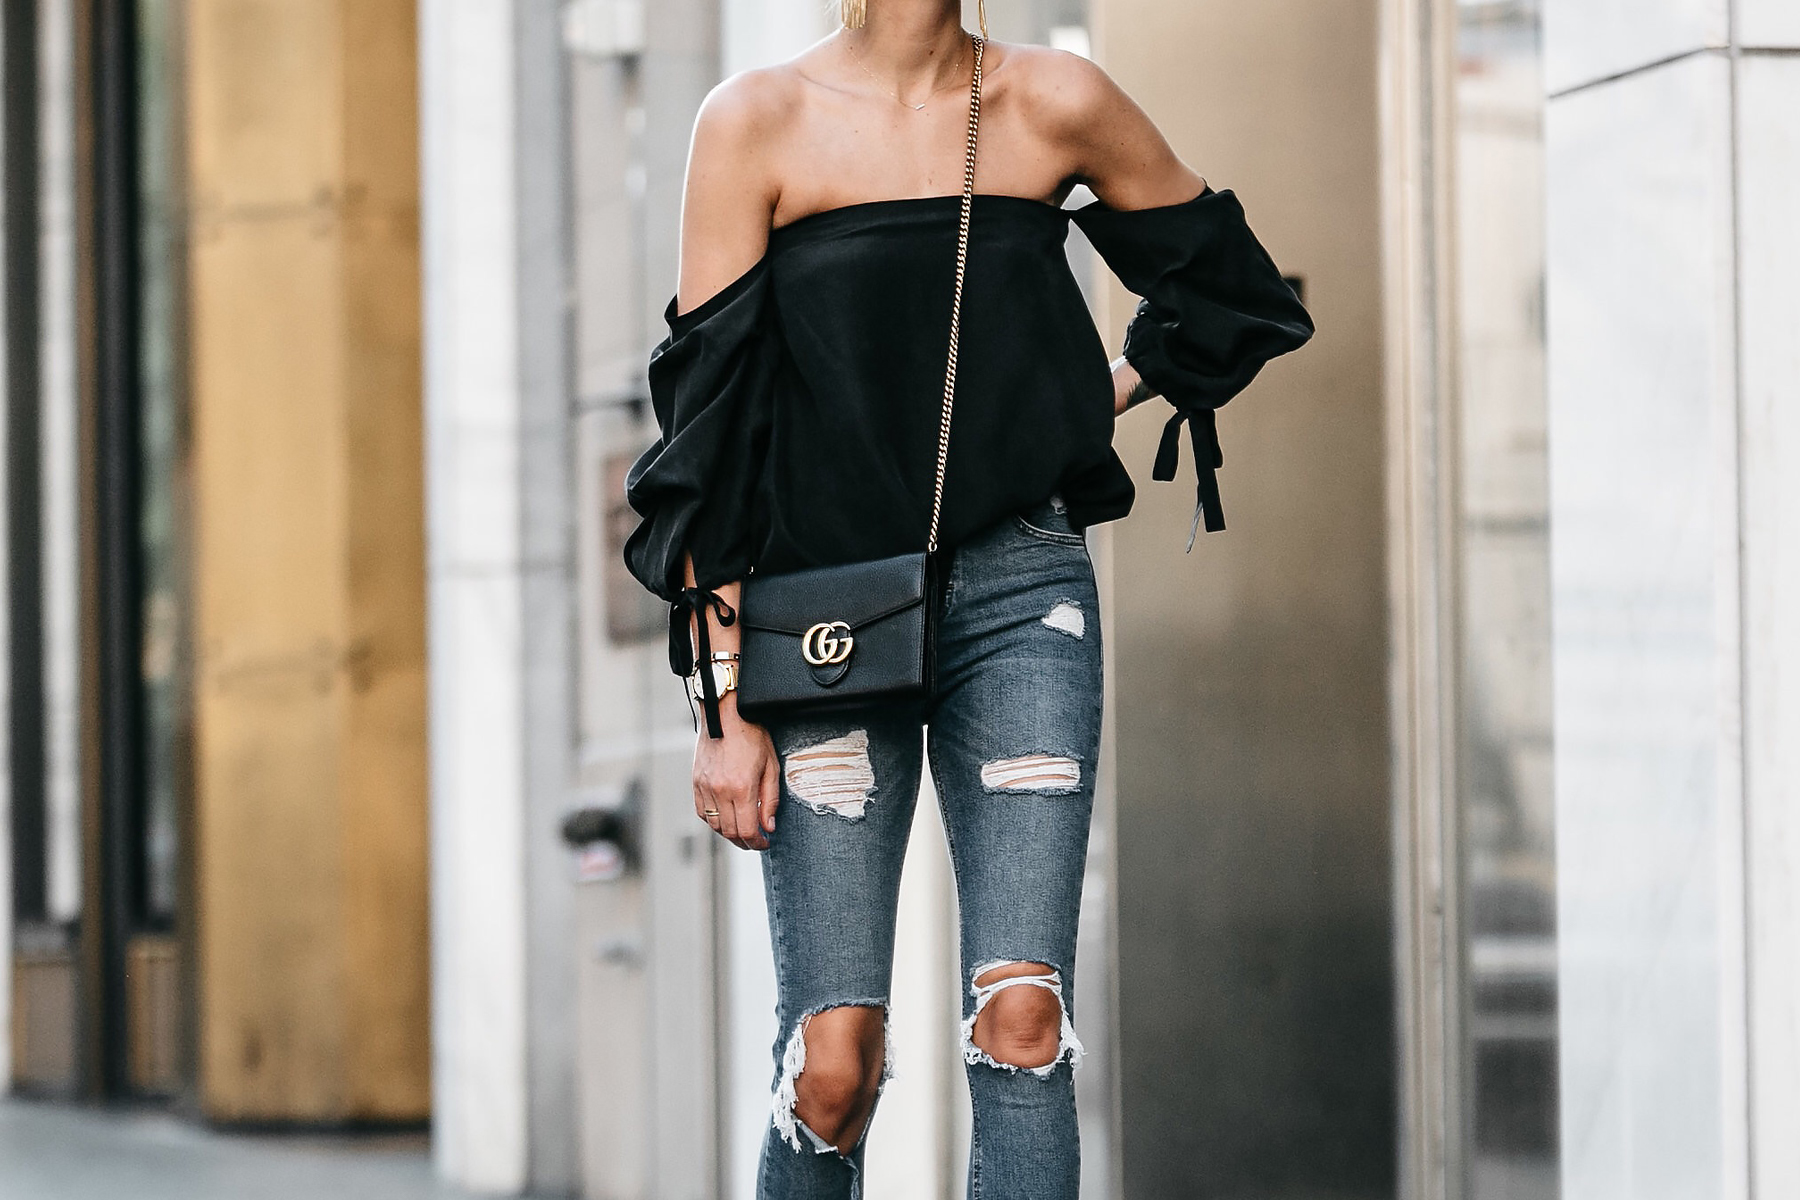 Club Monaco Black Off-the-Shoulder Top Denim Ripped Skinny Jeans Outfit Gucci Marmont Handbag